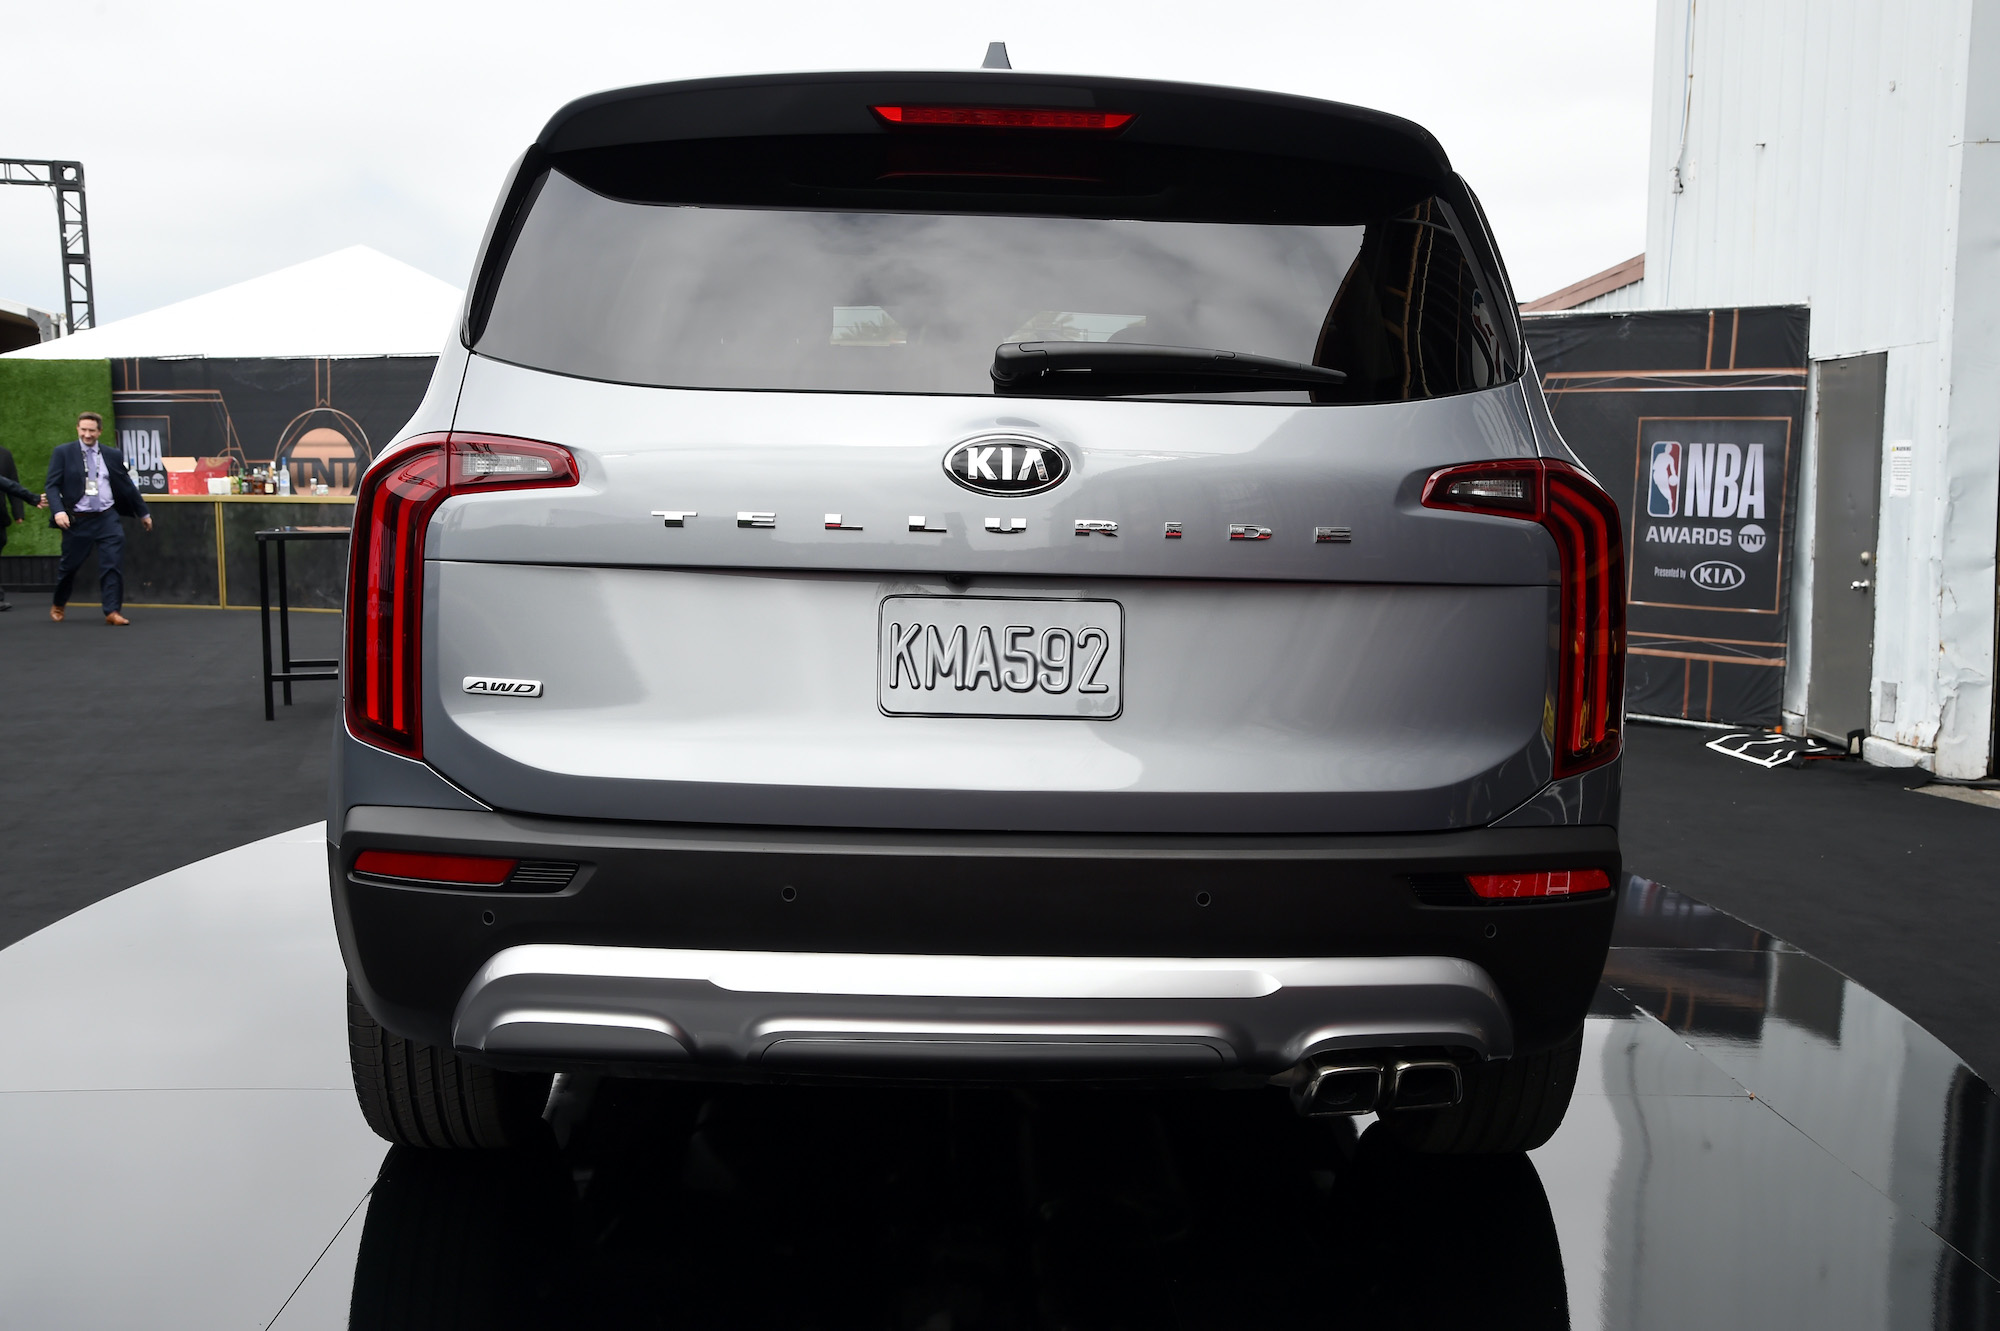 Replacing A 2020 Kia Telluride Windshield Is Unreasonably Expensive